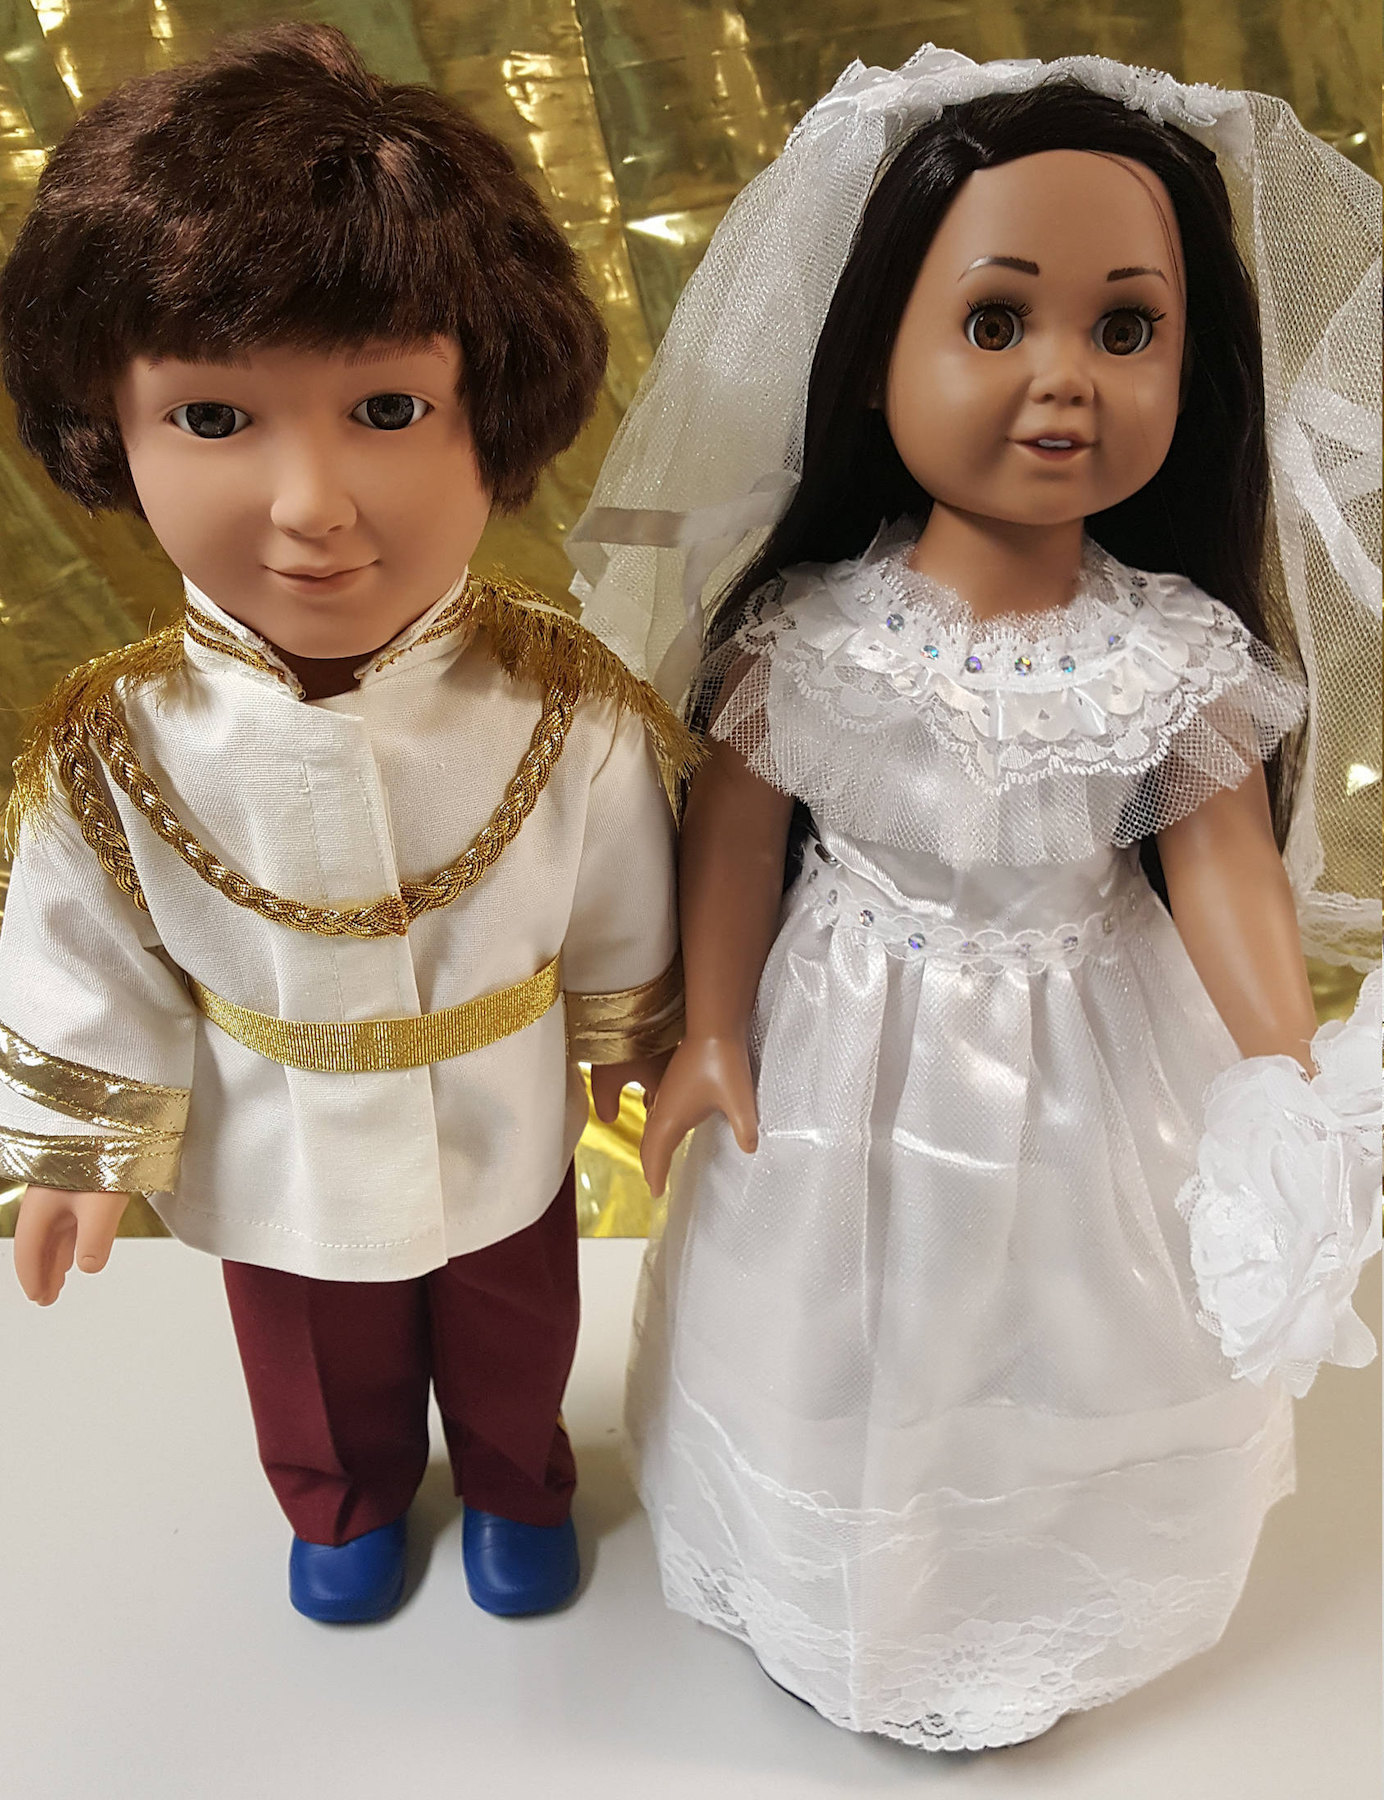 These Meghan Markle and Prince Harry Dolls From Etsy Are Going Viral